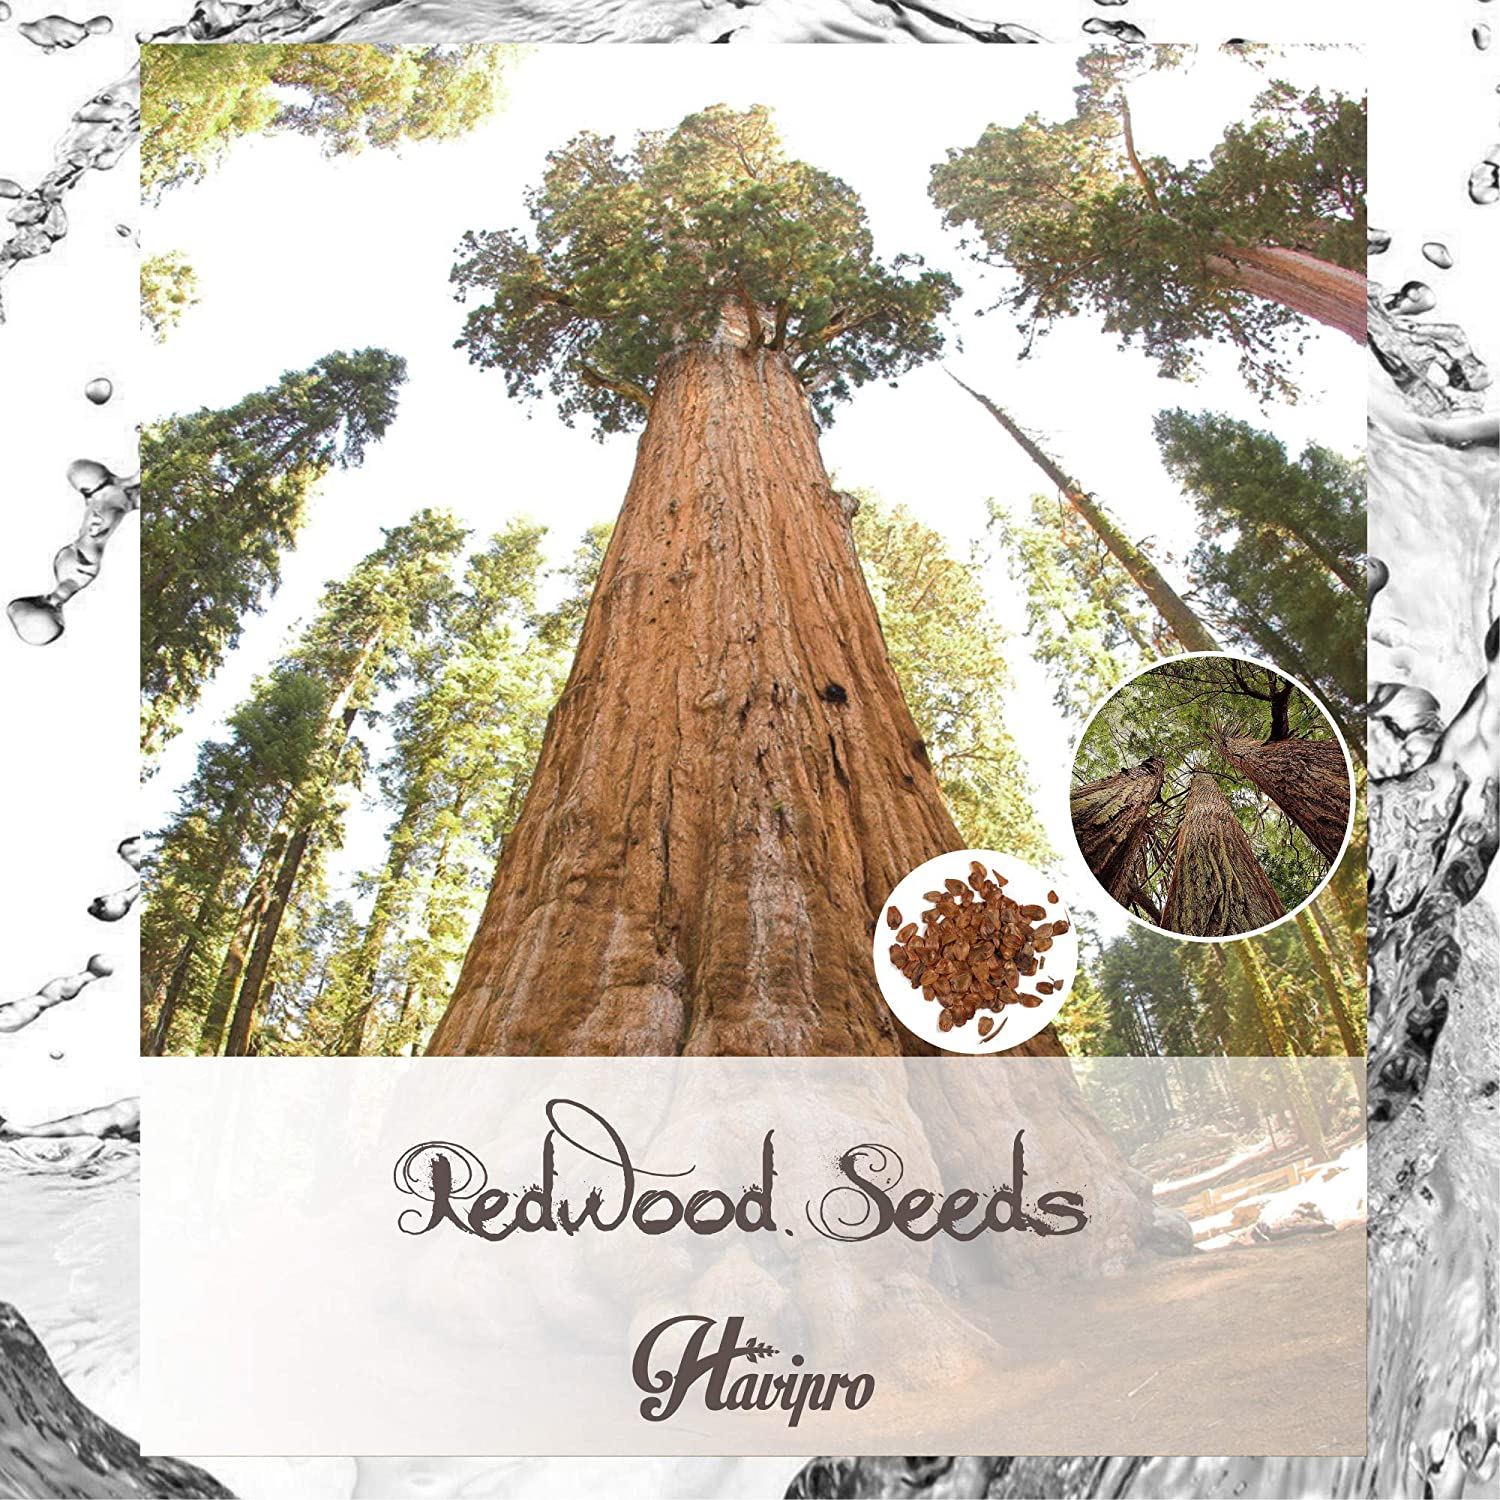 100 Redwood Seeds Giant Sequoia by HAVIPRO Sierra Redwood Tree Seeds for Planting Sequoiadendron Giganteum Giant California Redwood Seeds